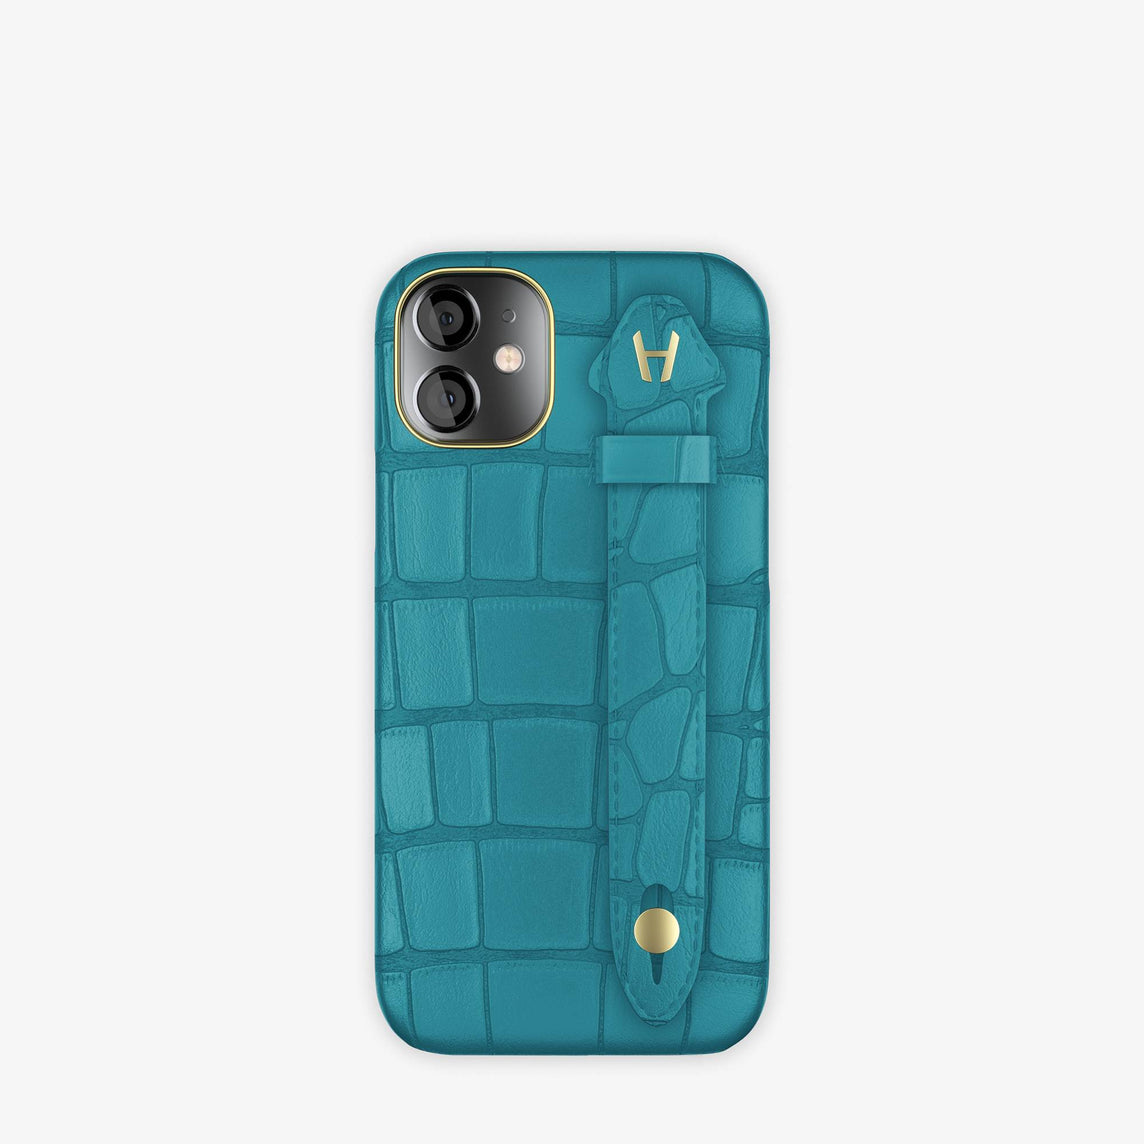 Alligator Side Finger Case iPhone 12 Mini | Blue Teal/Blue Teal -Yellow Gold